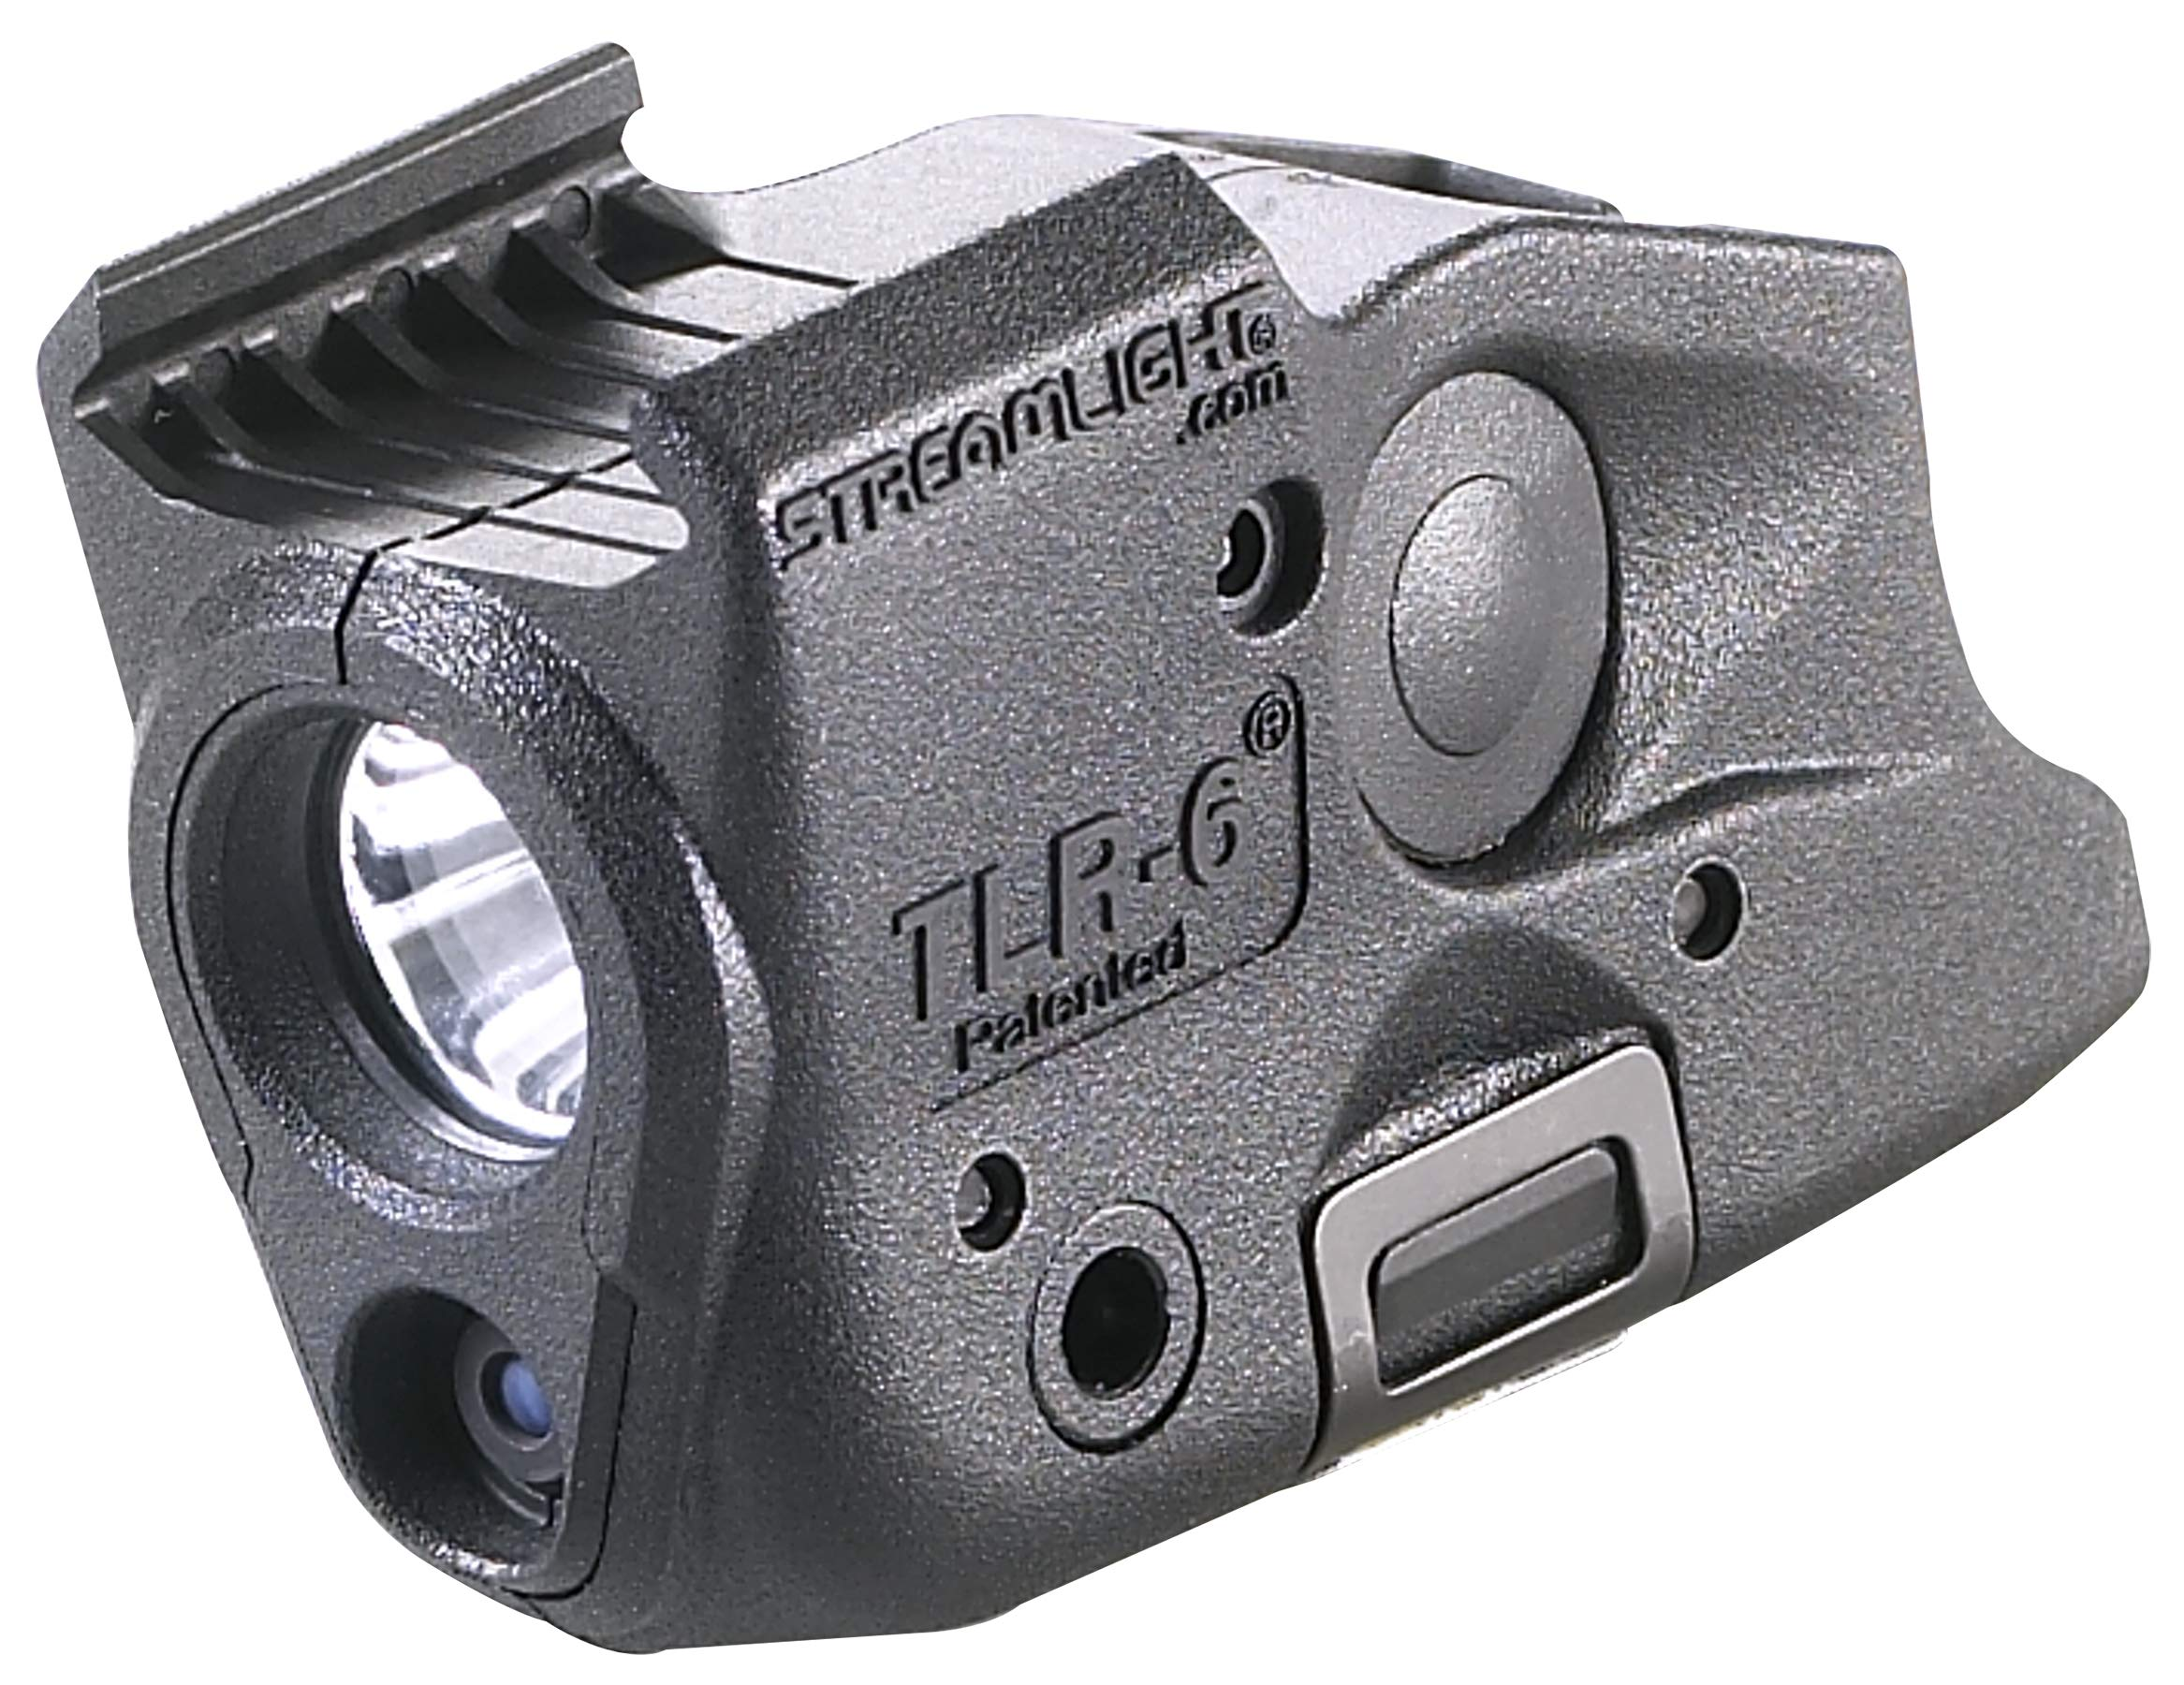 Streamlight TLR-6 Tactical Pistol Mount Flashlight 100 Lumen Only for Glock Railed Hand Guns, Black - 100 Lumens by Streamlight